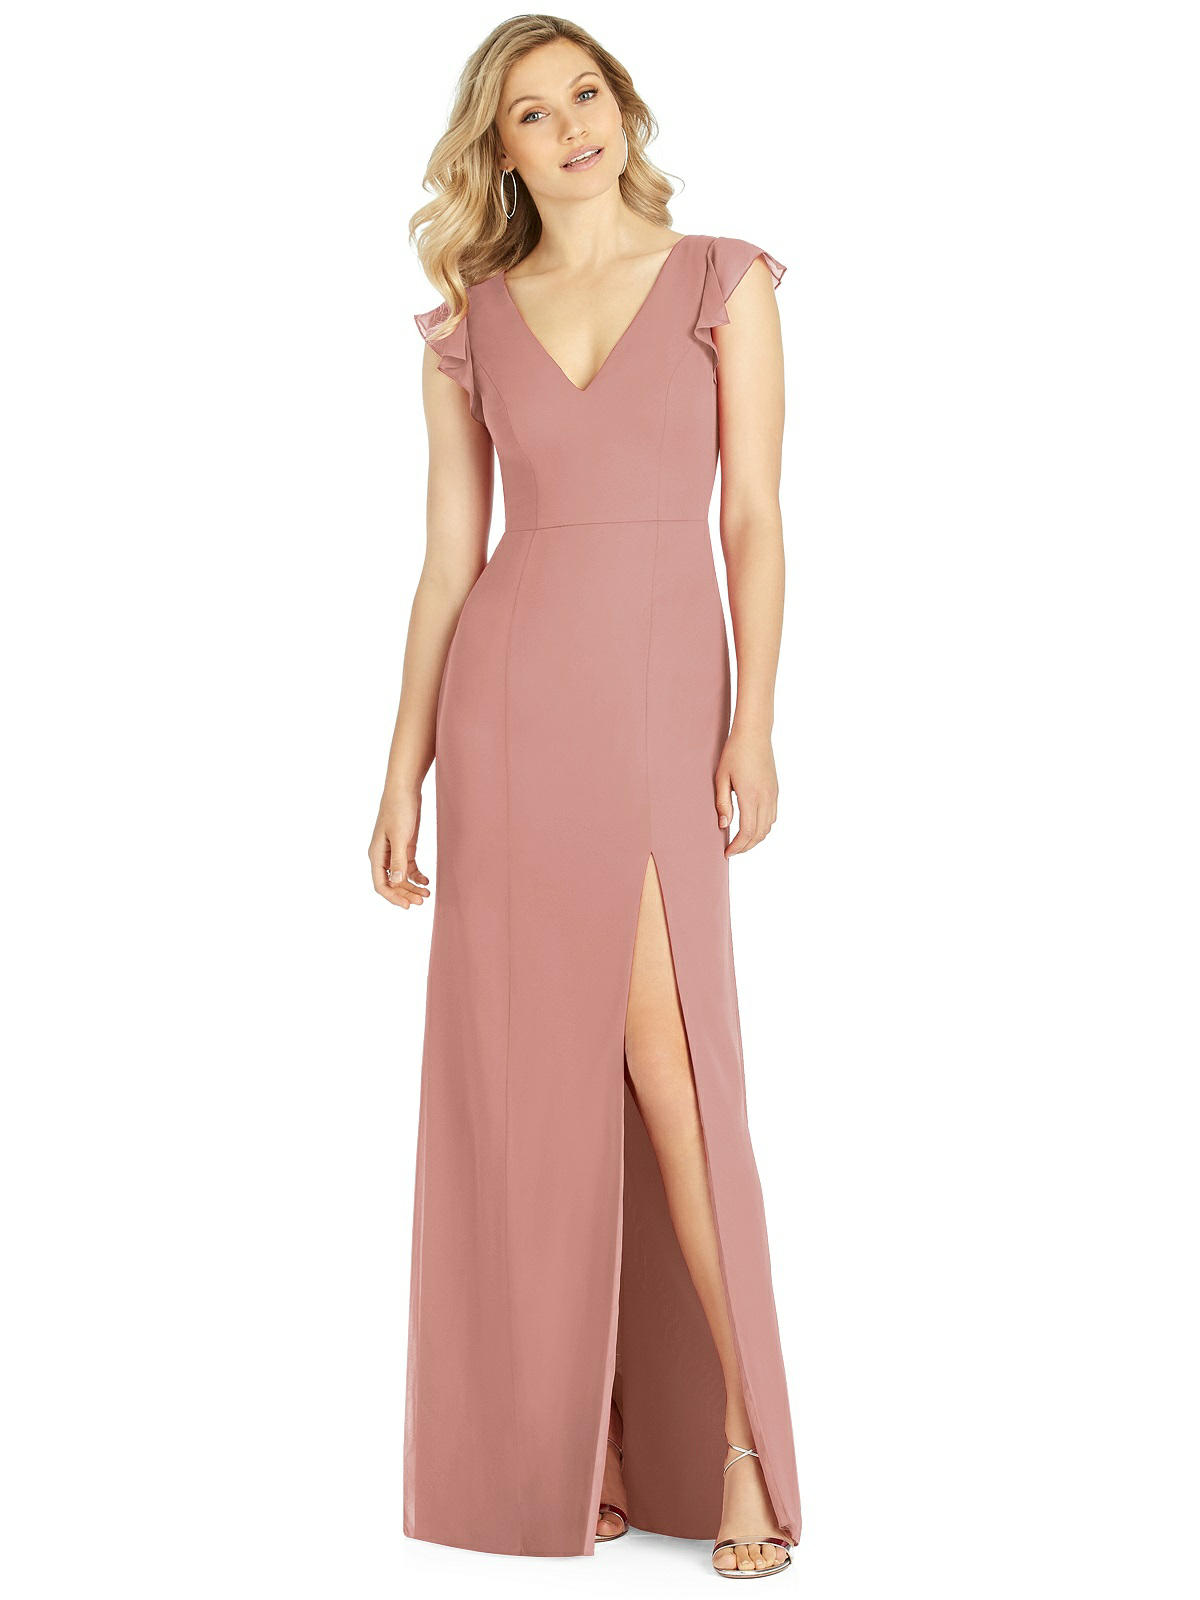 Dessy After Six style 6810 in Desert Rose chiffon by Dessy